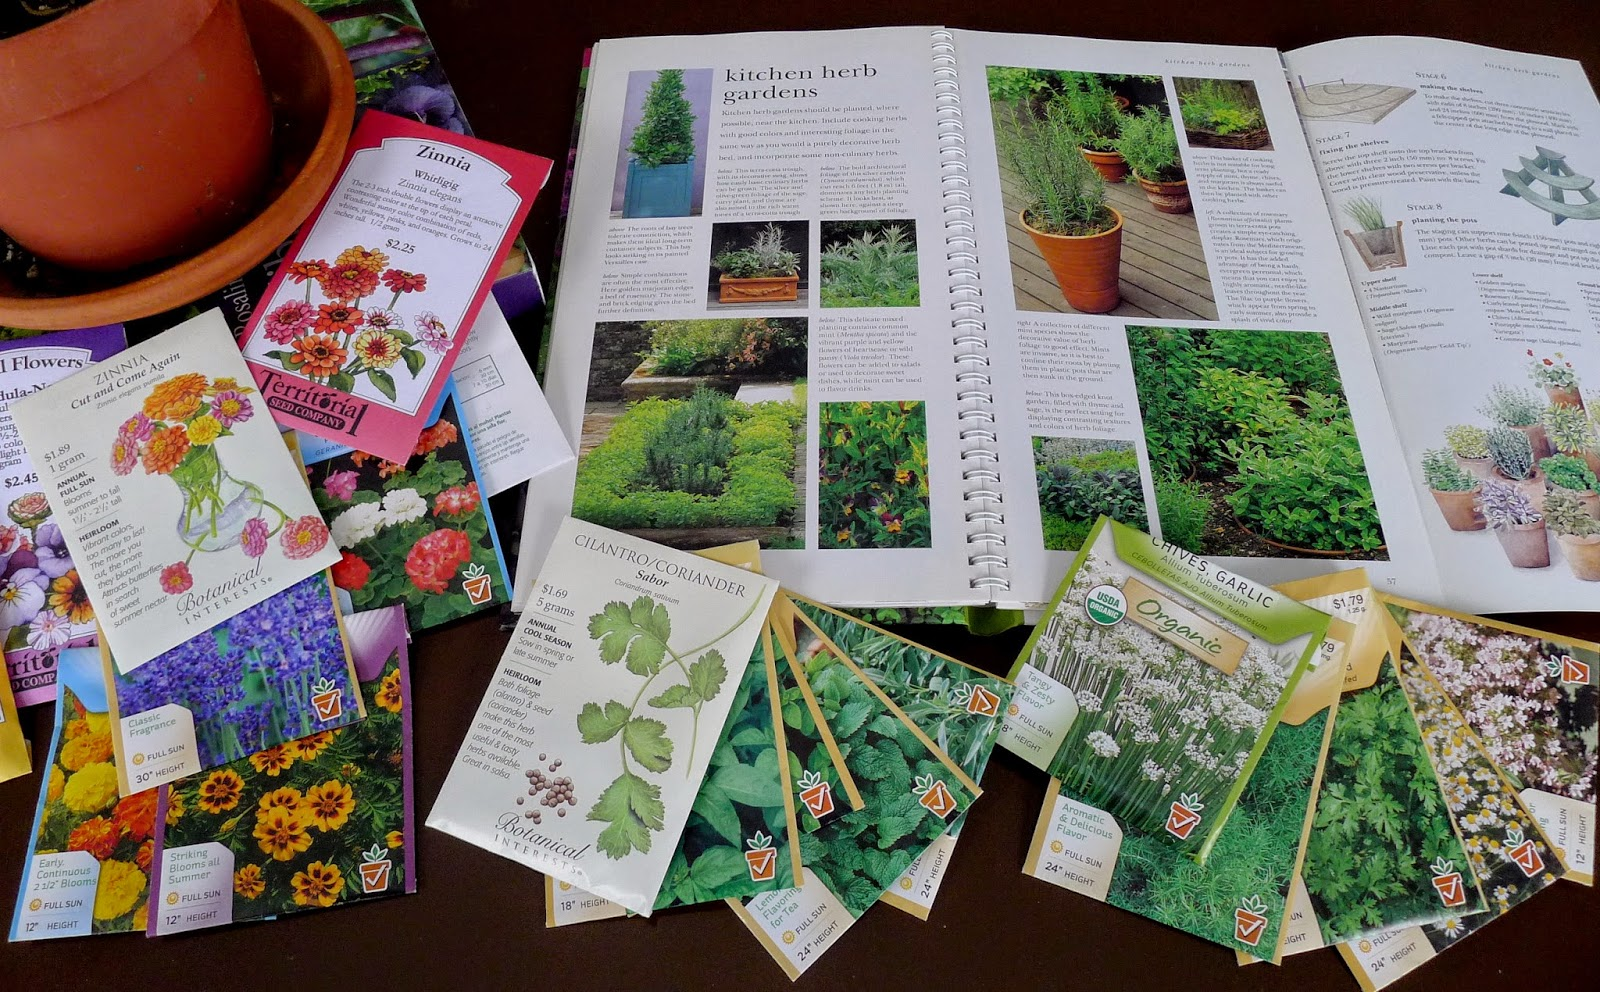 February Garden and Kitchen  Tasks, order seeds